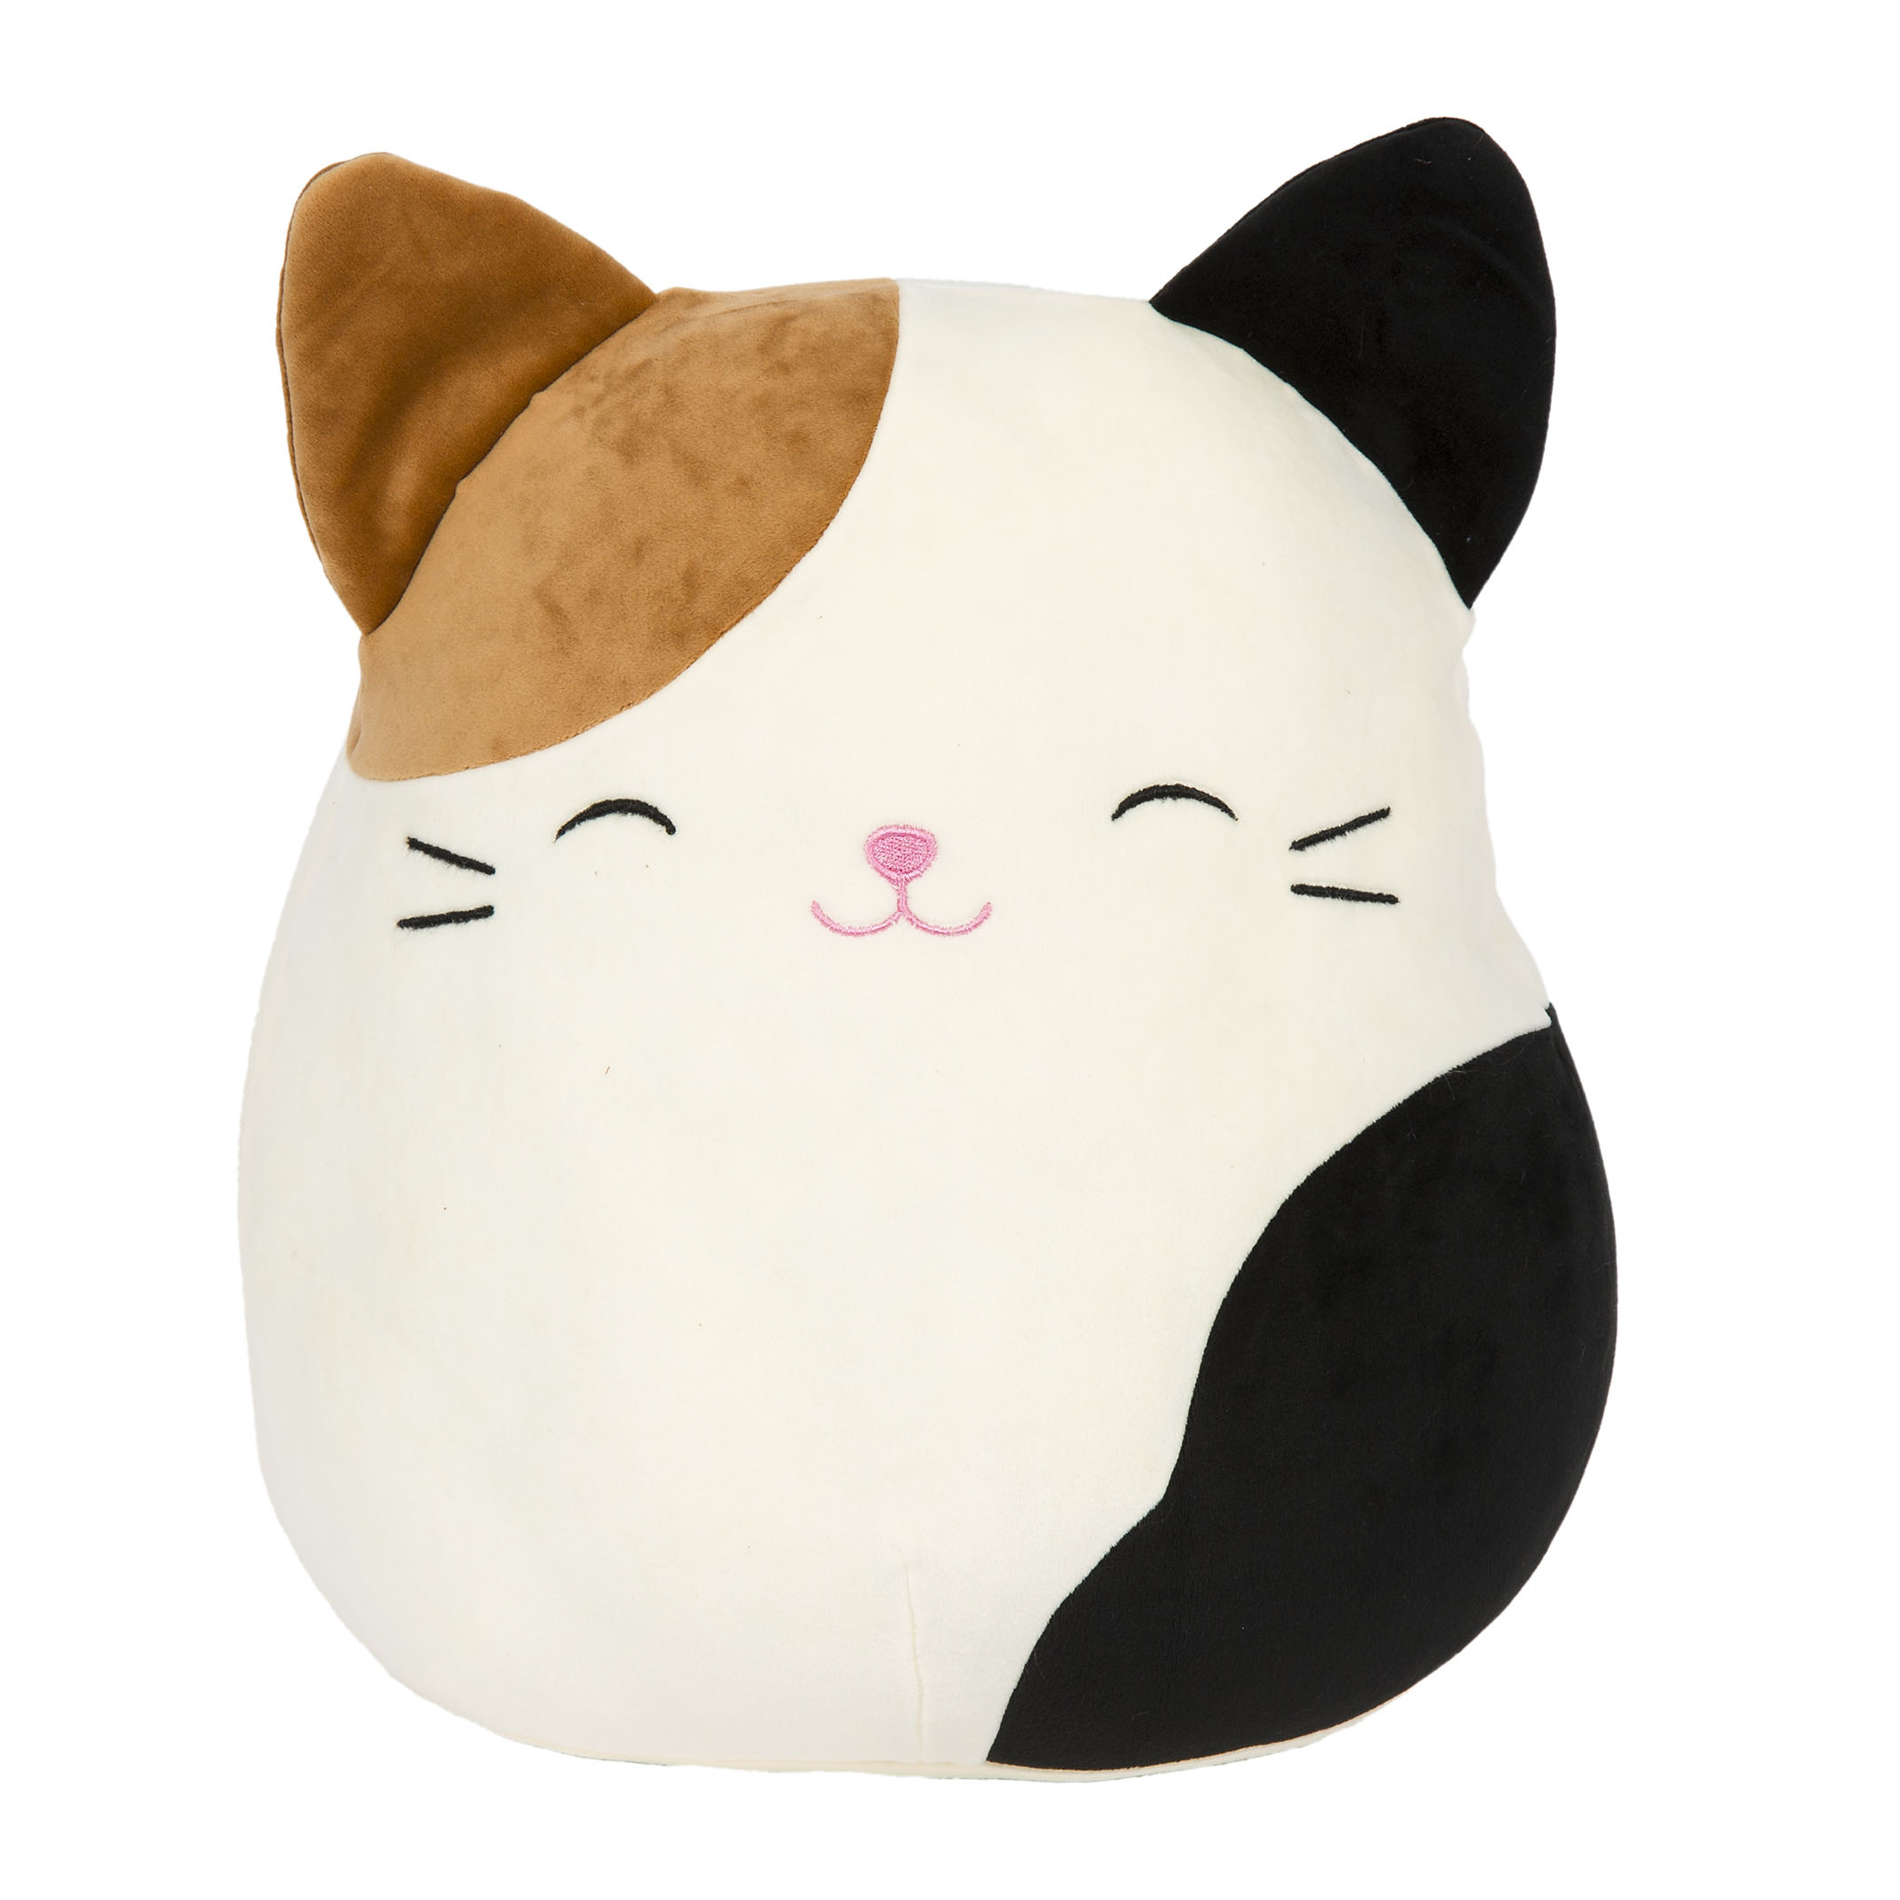 Squishmallow Gregory The Black and White Goat Super Soft Plush Pillow Pal 16 Inch